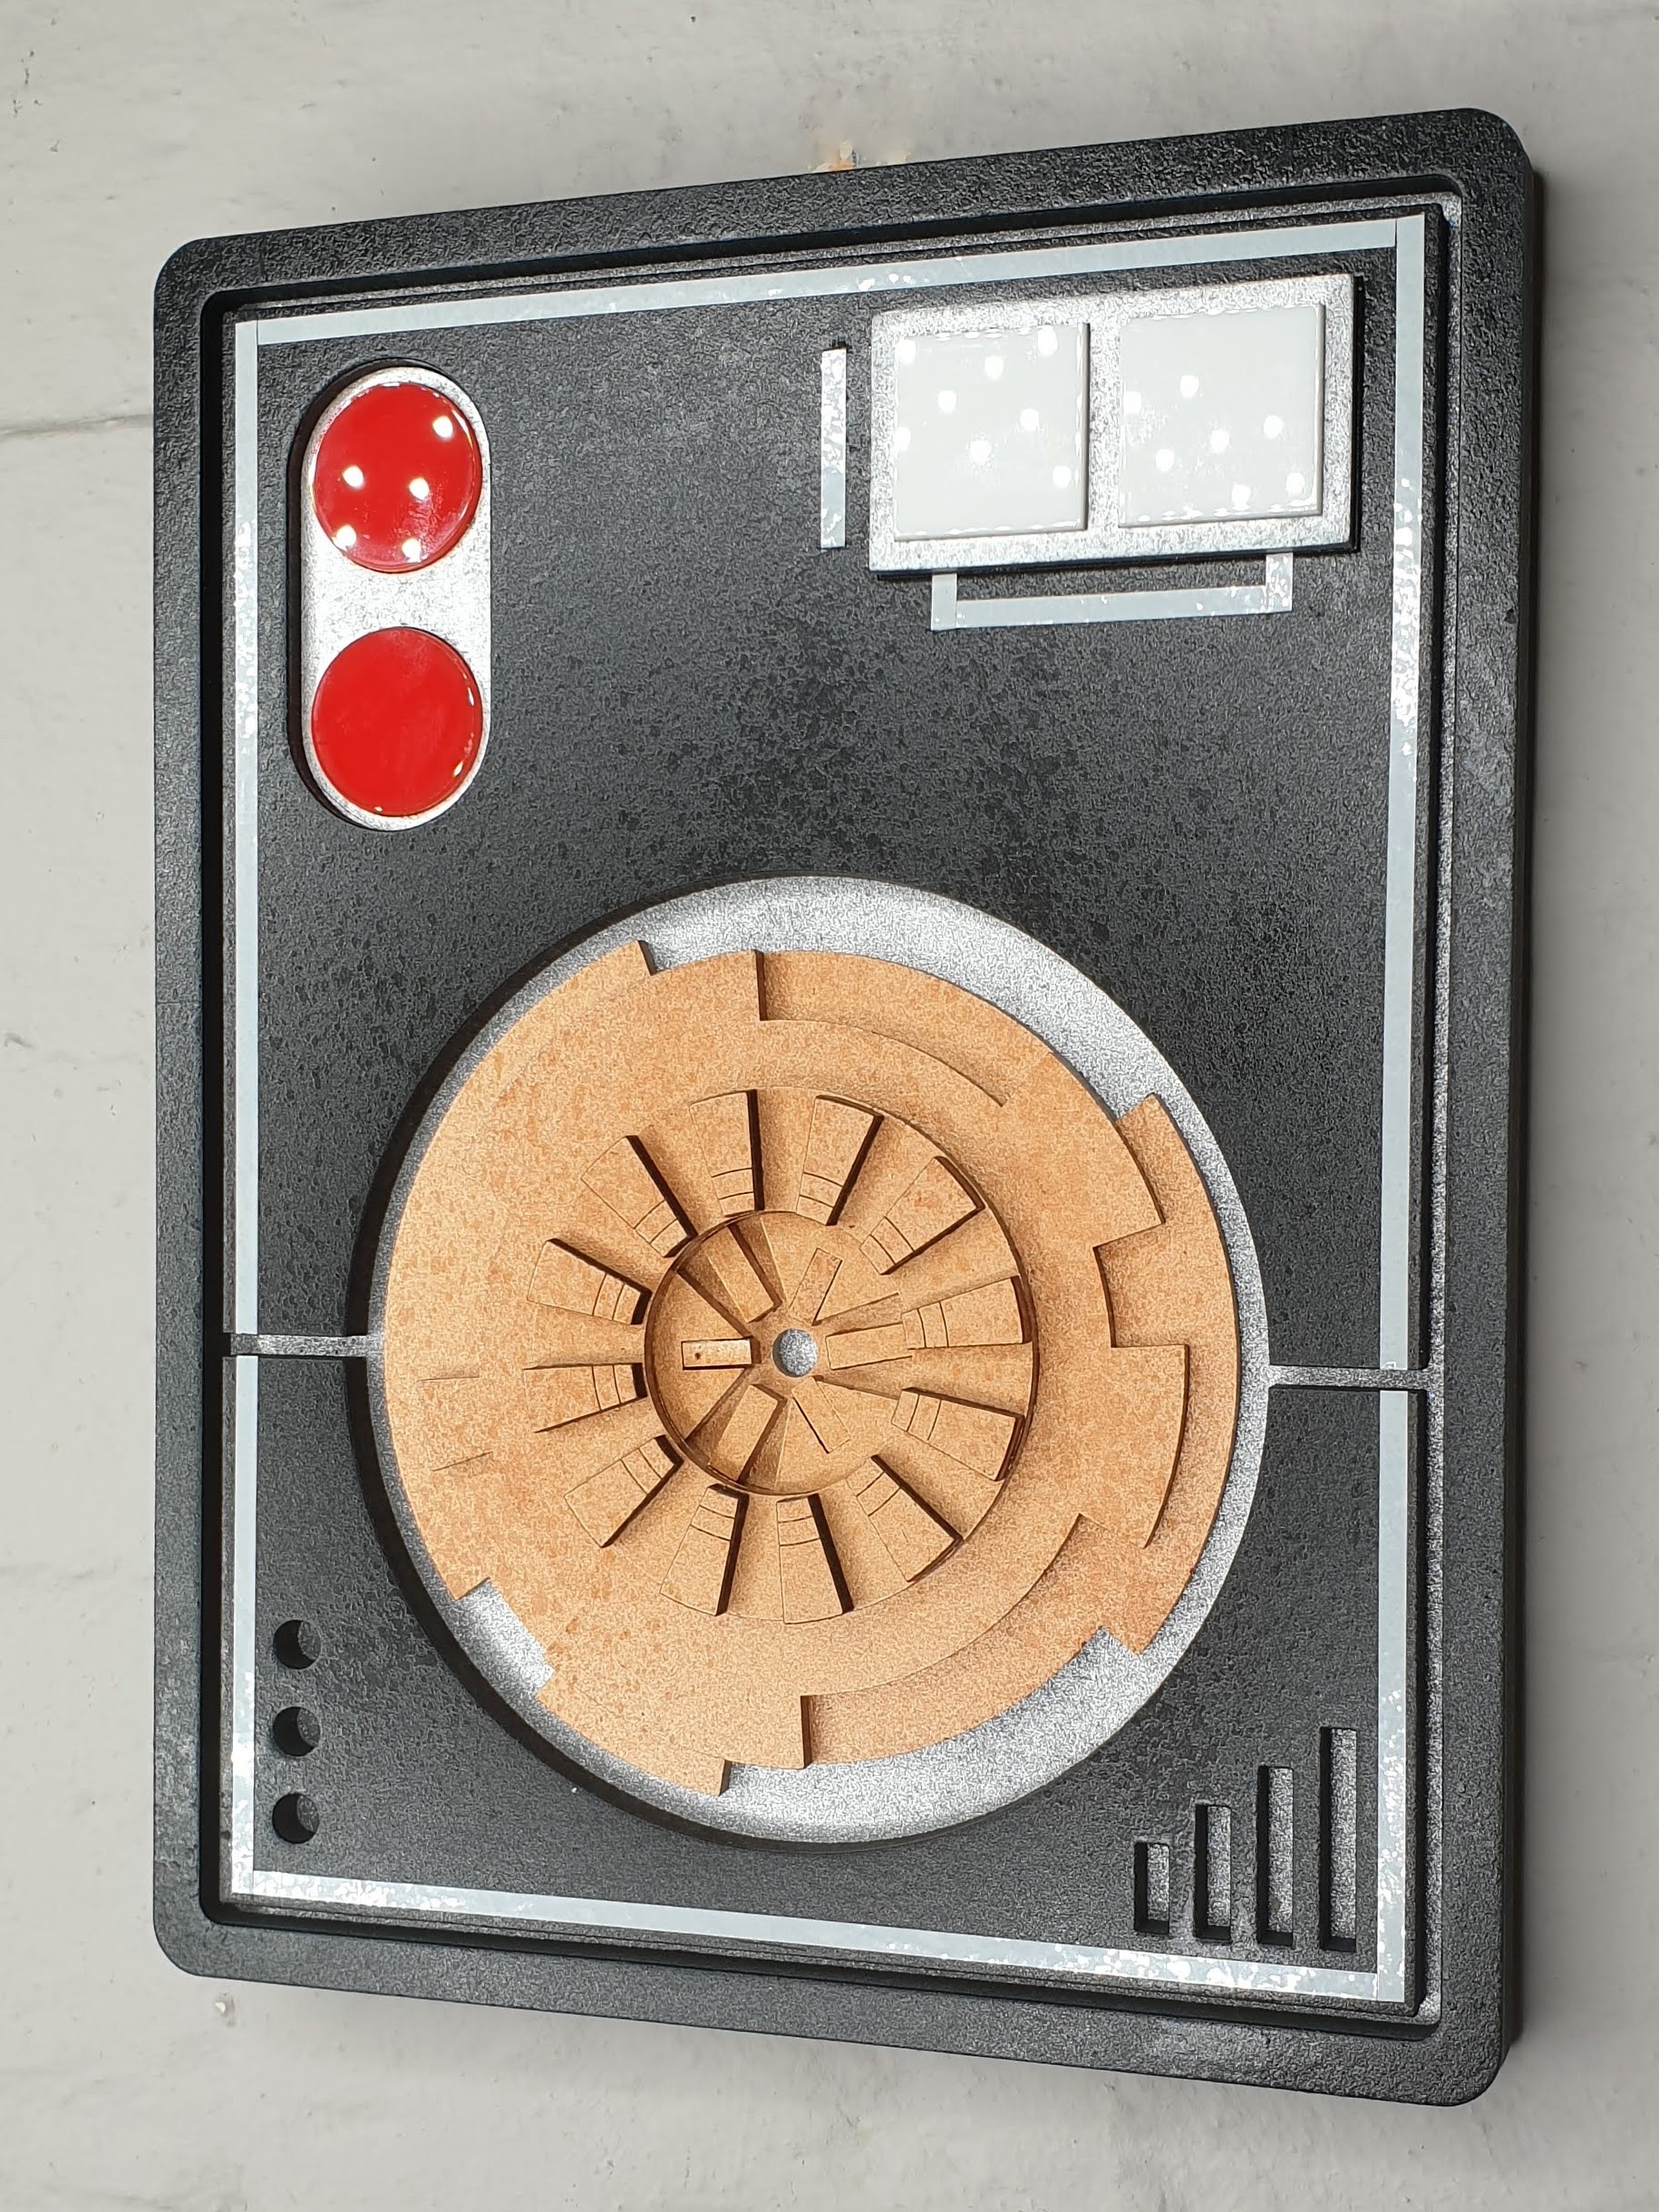 Droid access panel